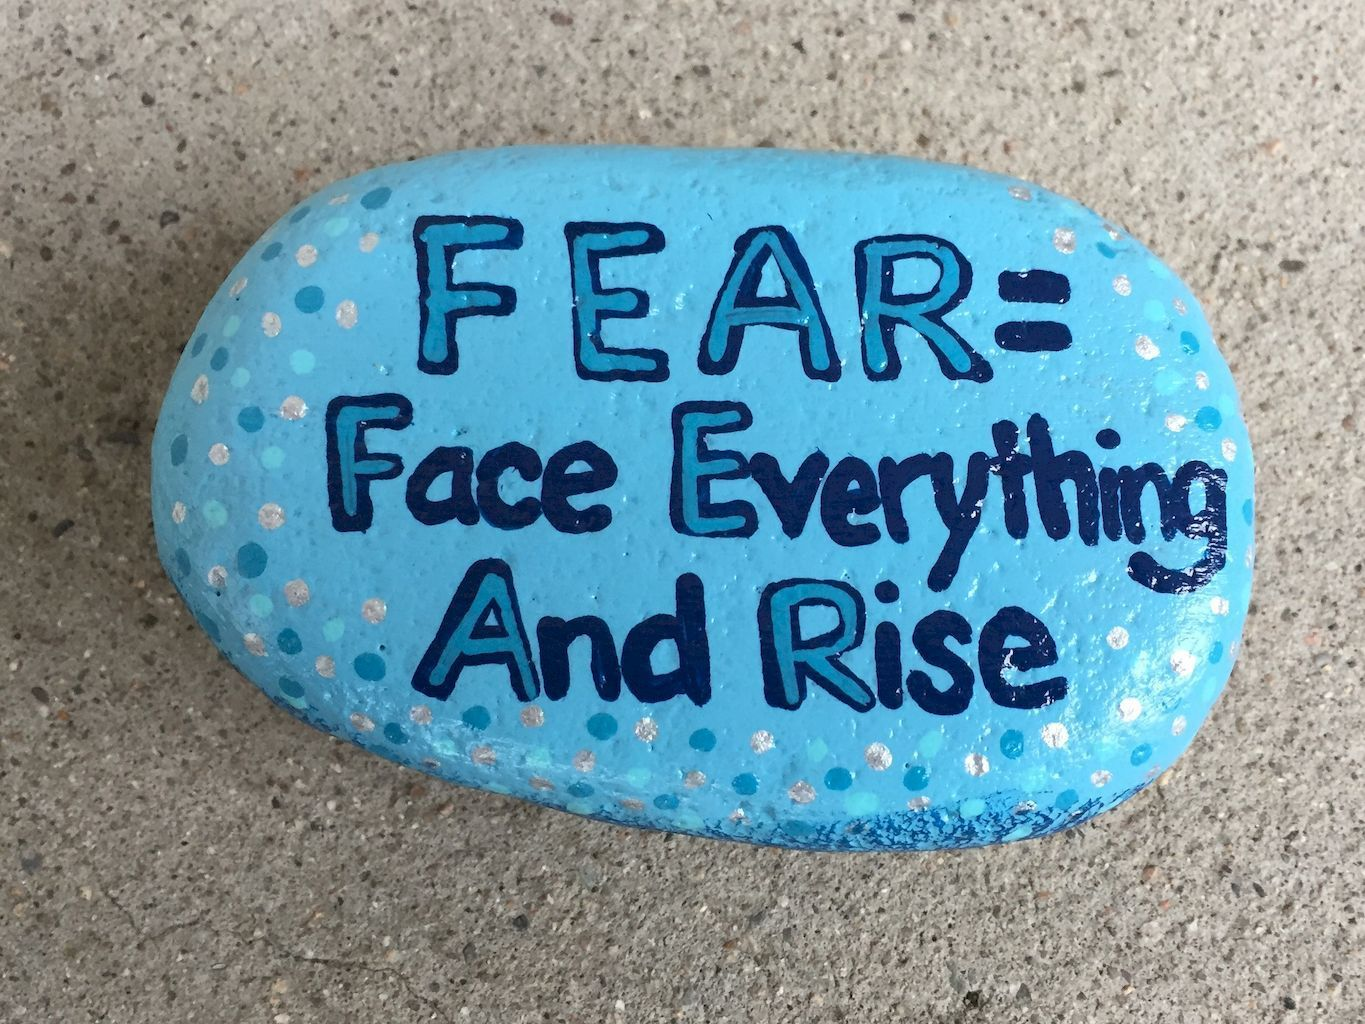 Diy painted rocks ideas with inspirational words and quotes (102 ...